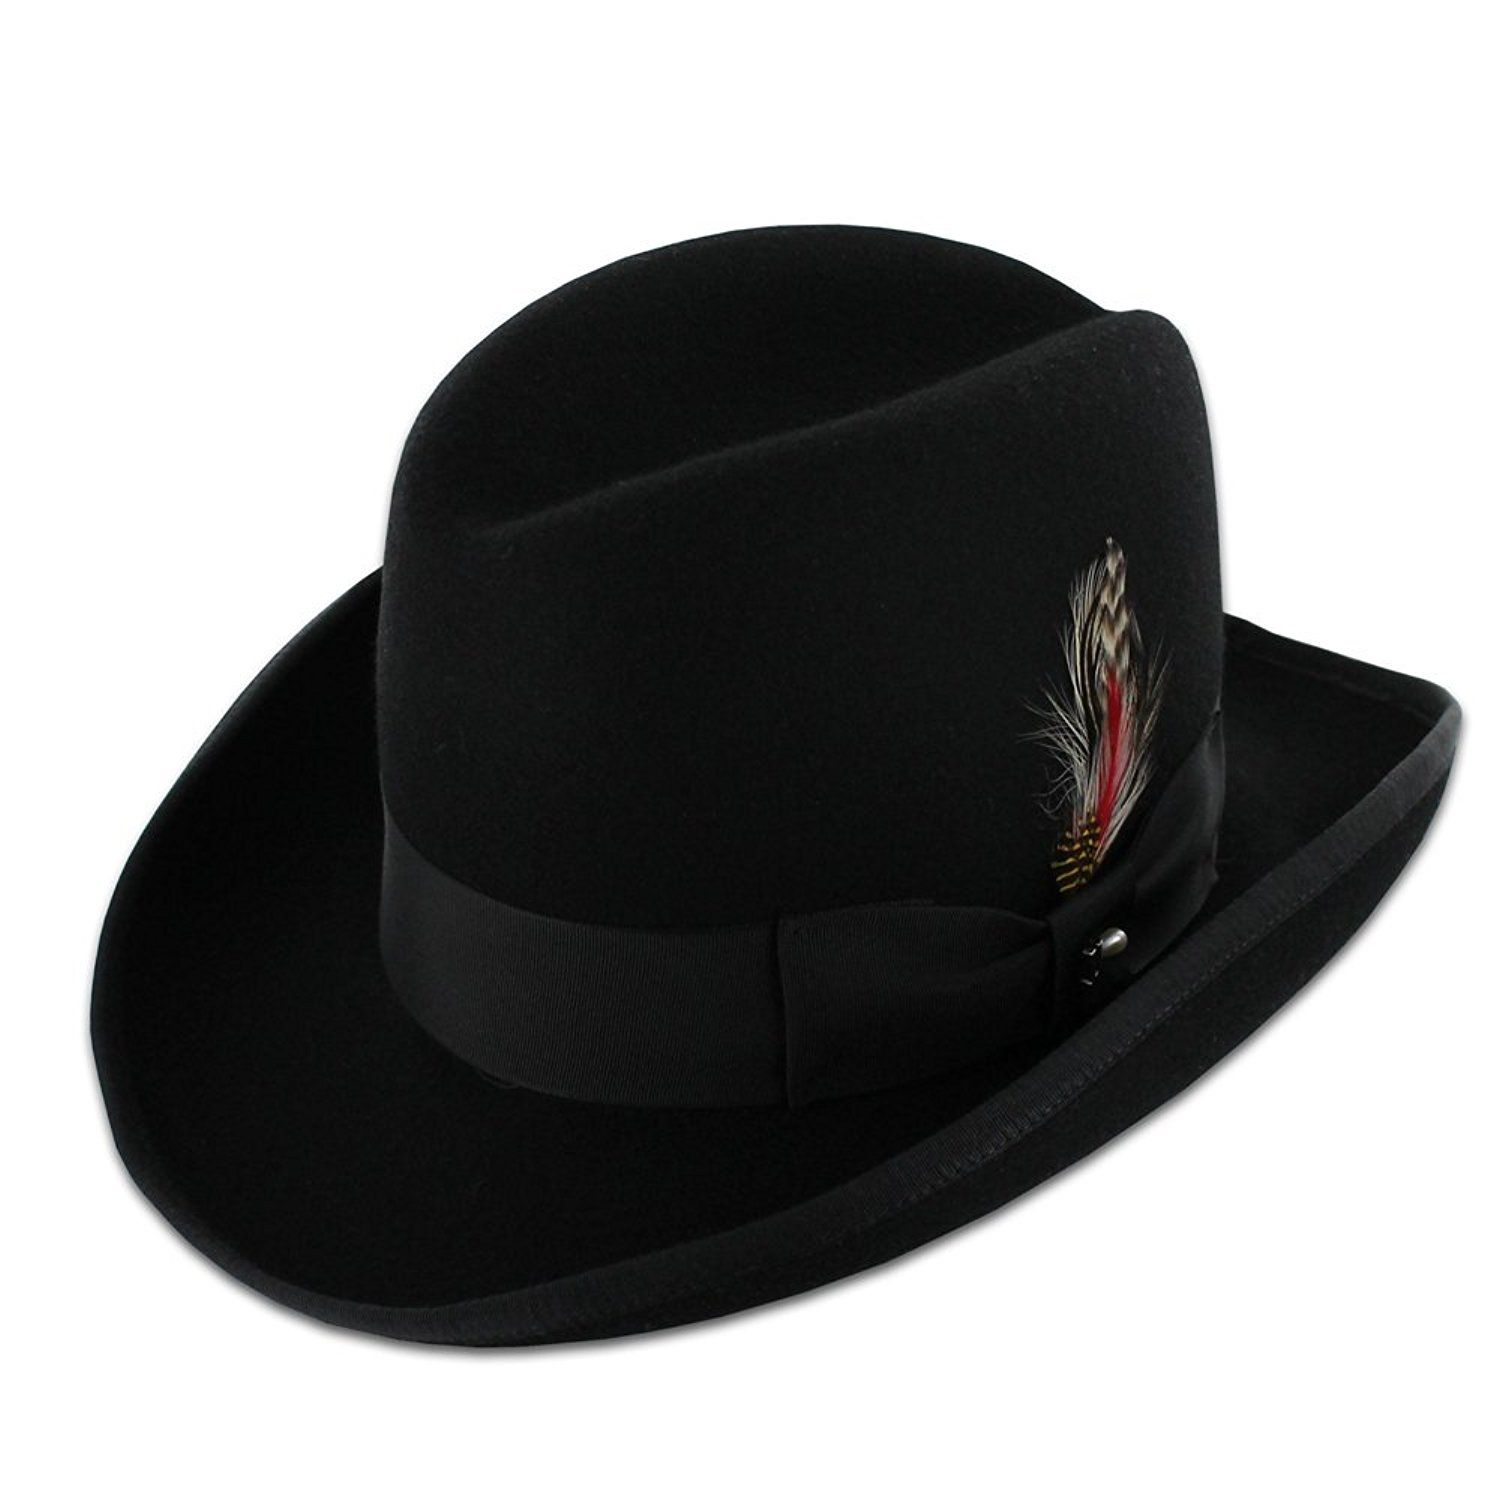 Belfry Wallace Men s 100% Wool Felt Homburg Hat in Black Made in the USA at  Amazon Men s Clothing store  Fedoras eaa8f6aa45c5